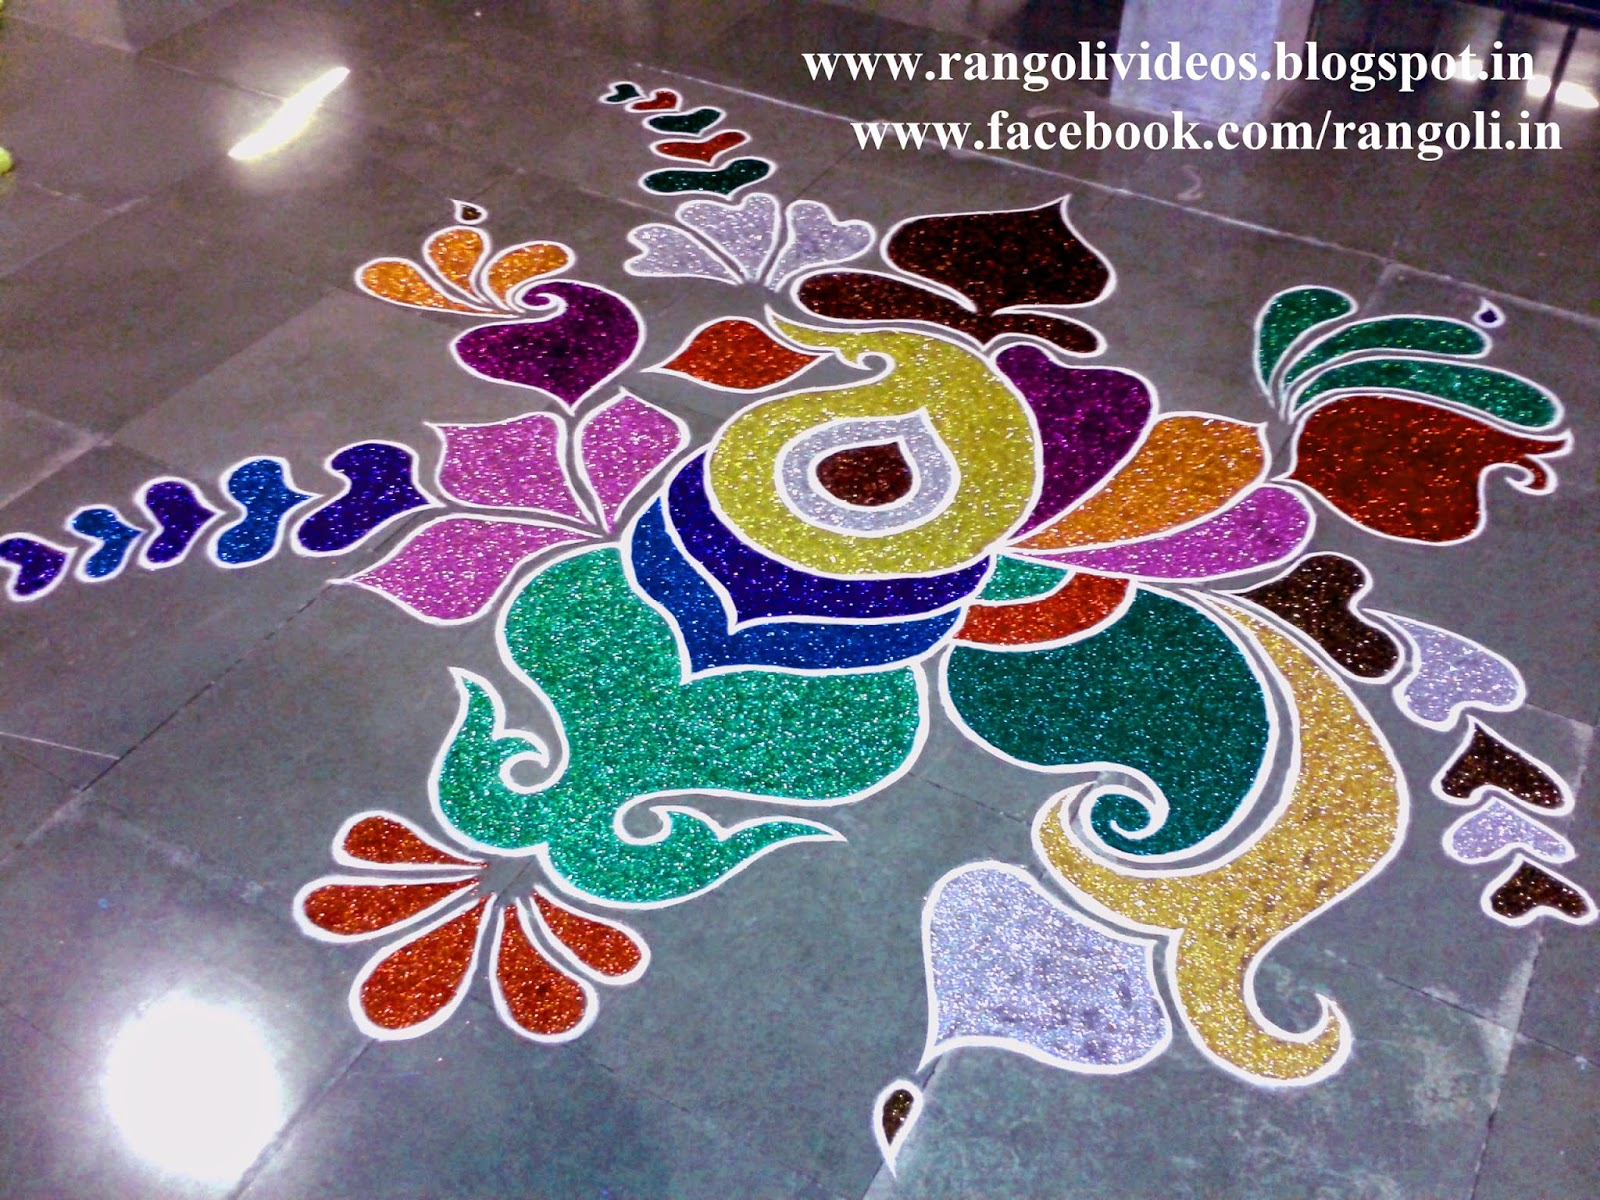 rangoli designs wallpaper stars - photo #26